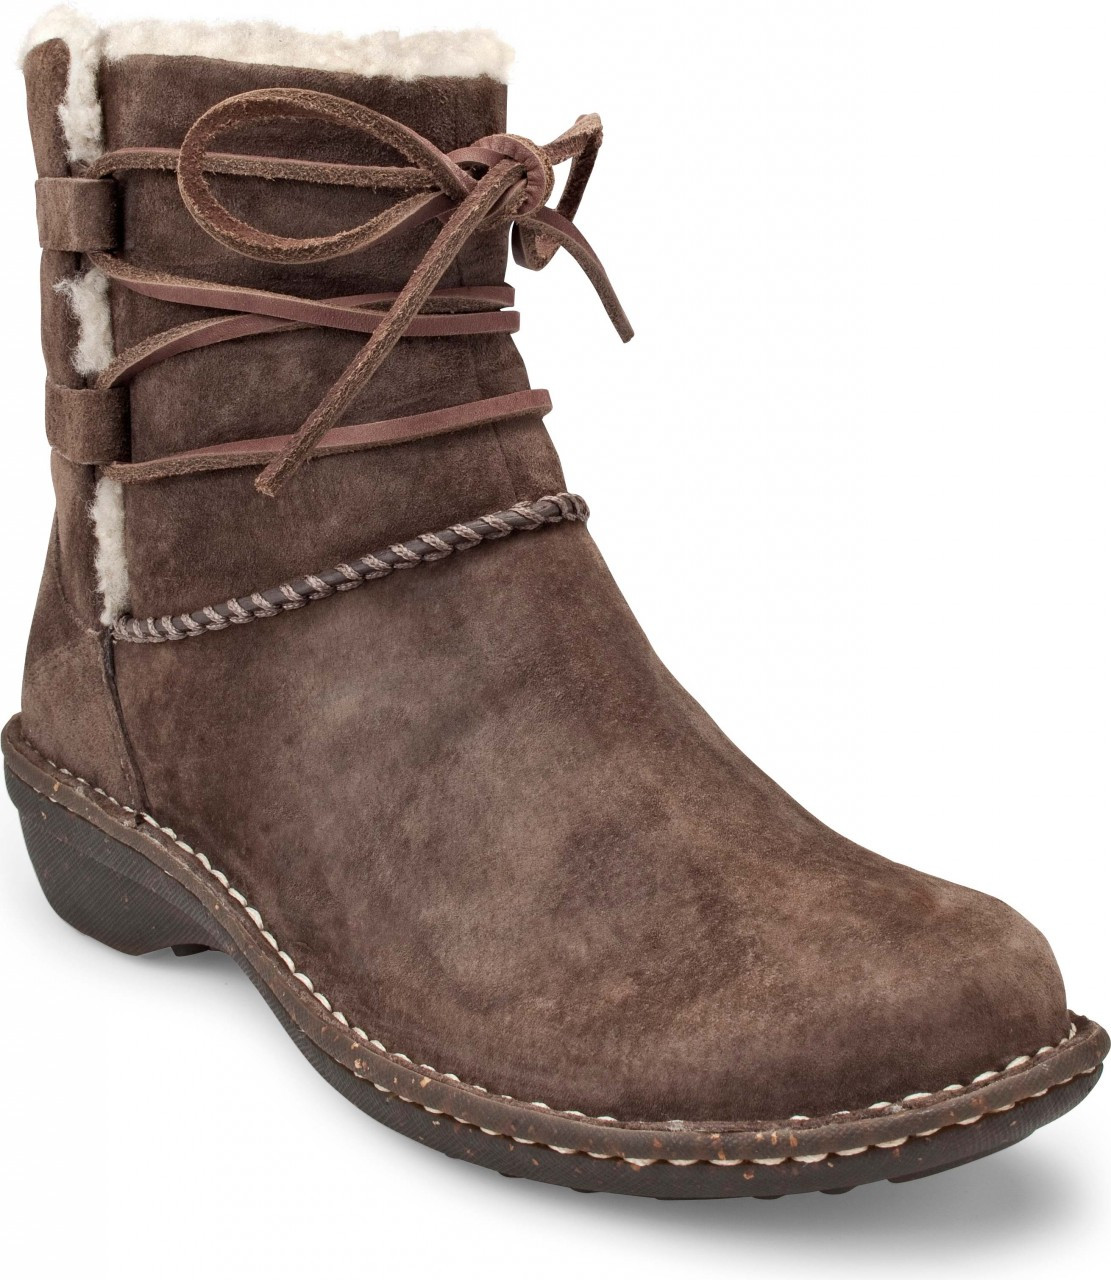 Ugg Caspia Boots Size 8